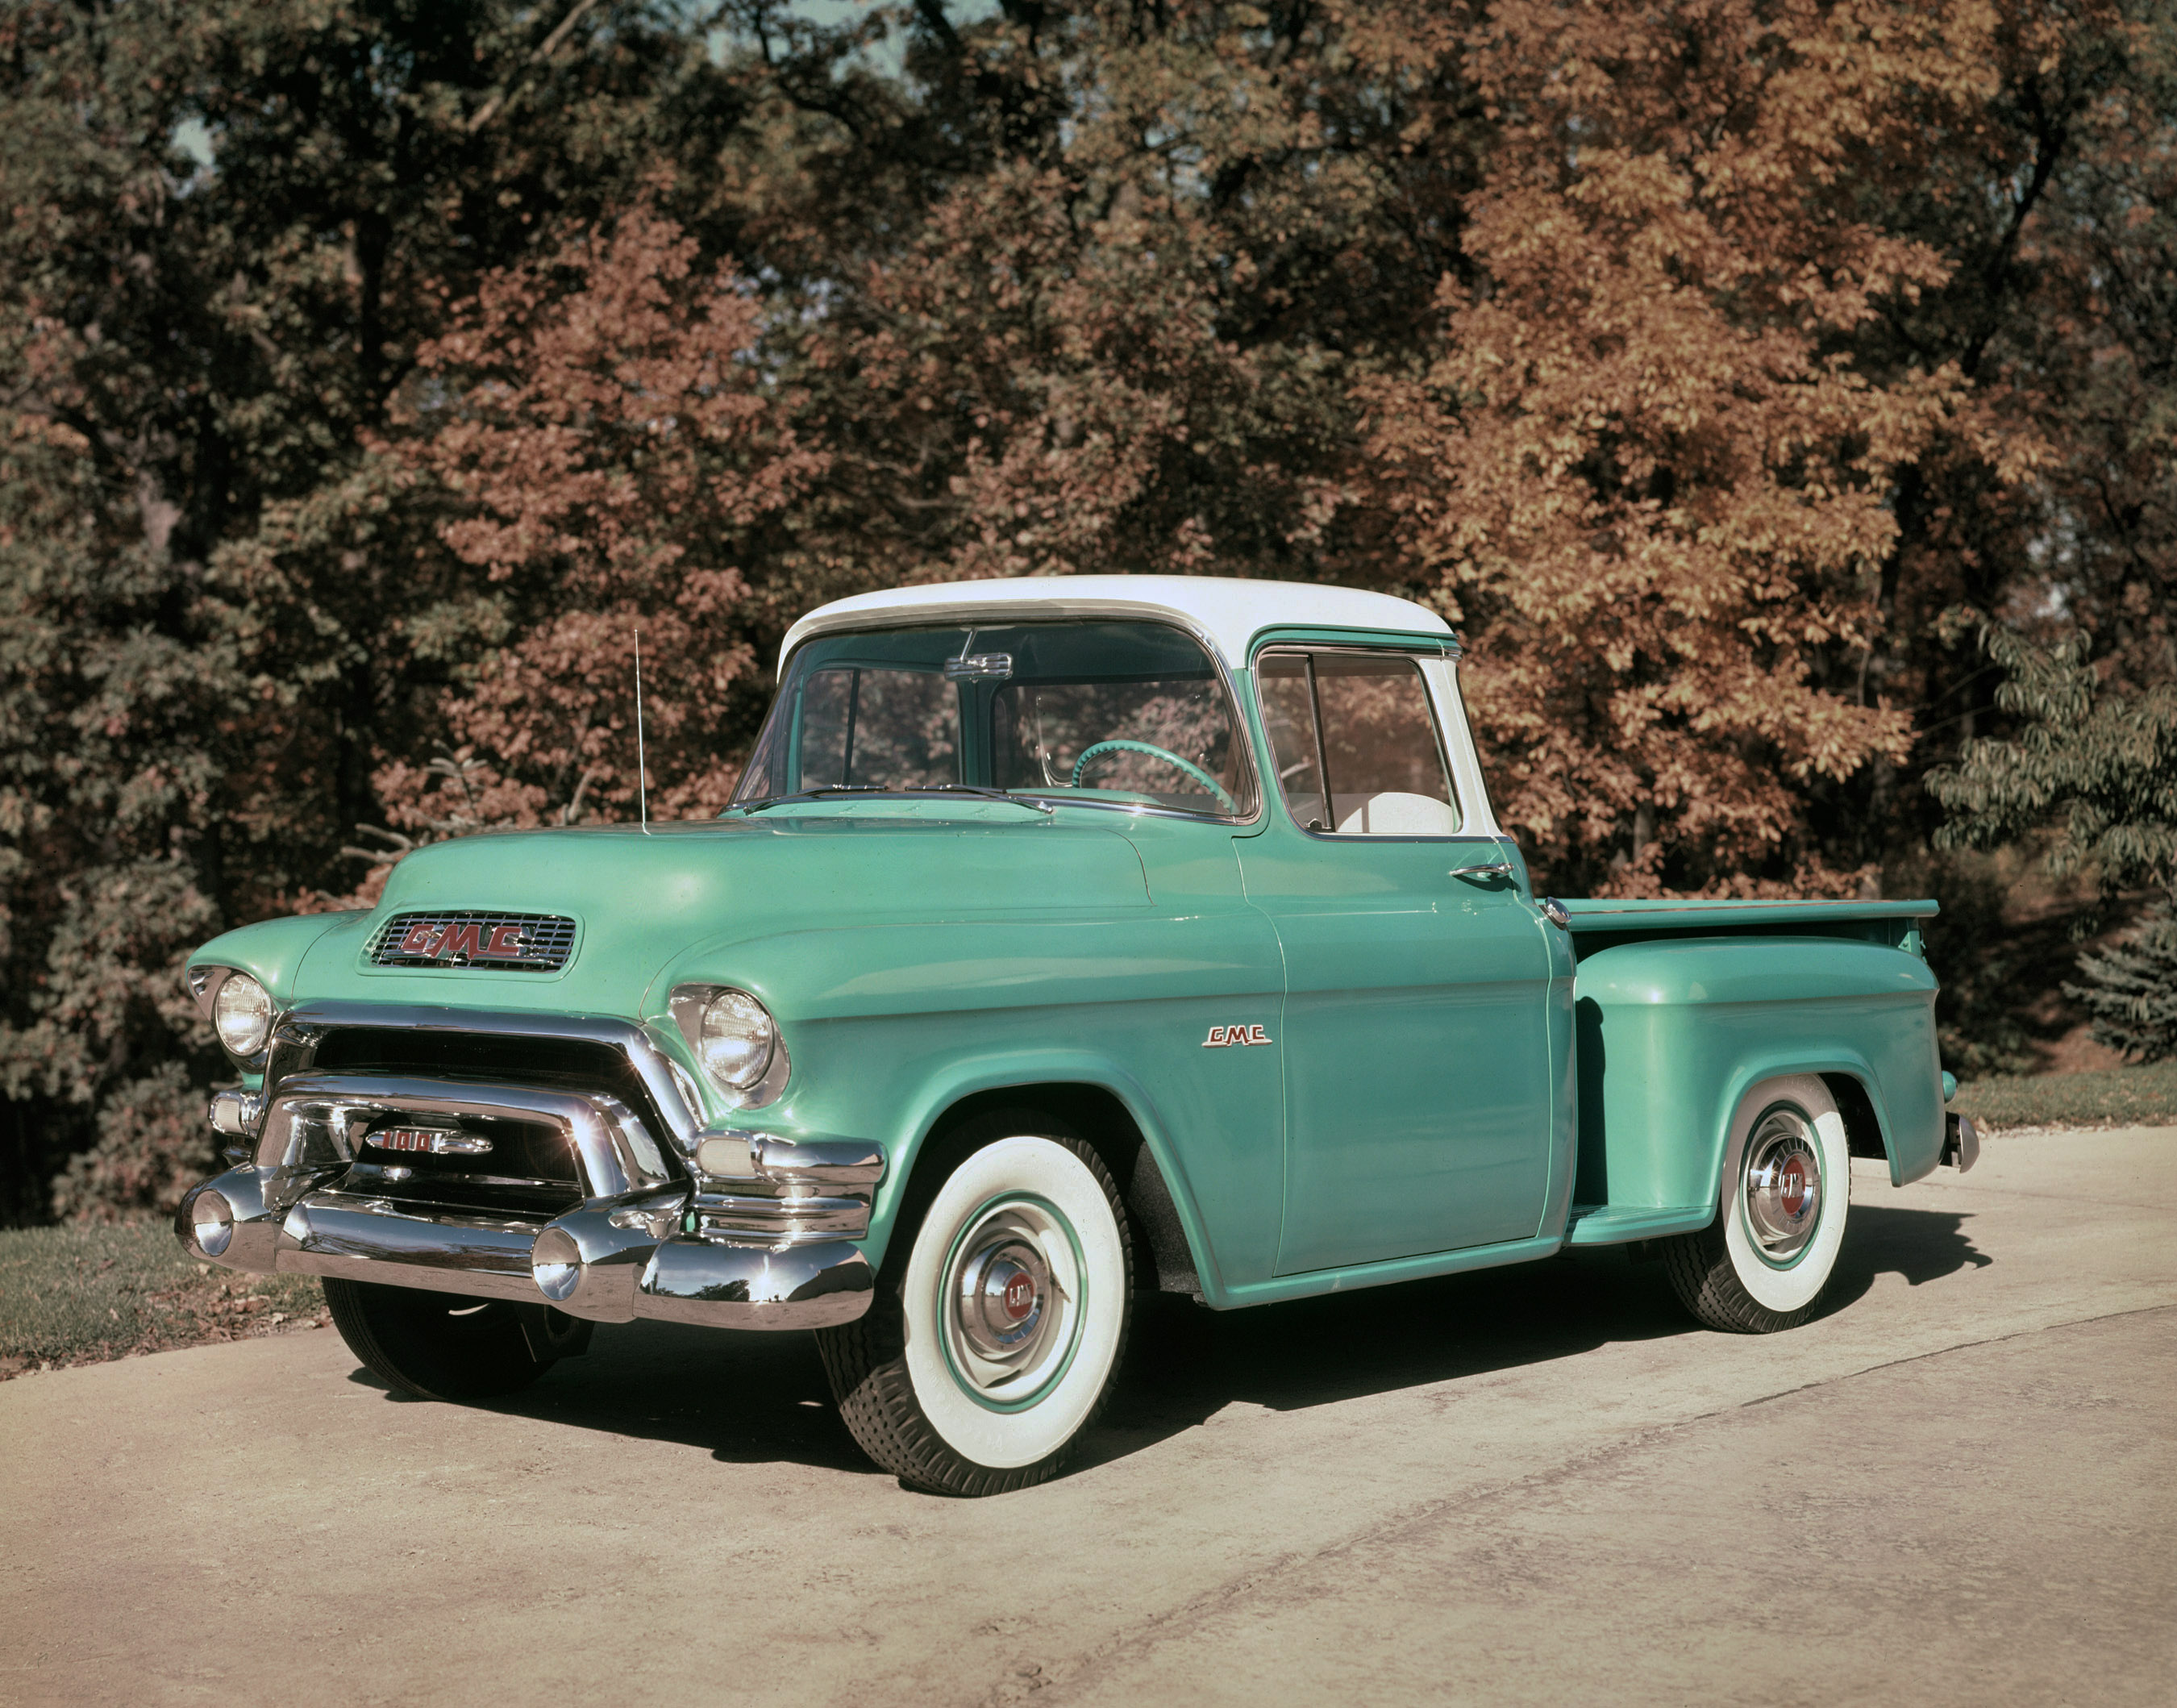 Gmc Pressroom United States Images 1955 Ford F100 Pick Up St Louis